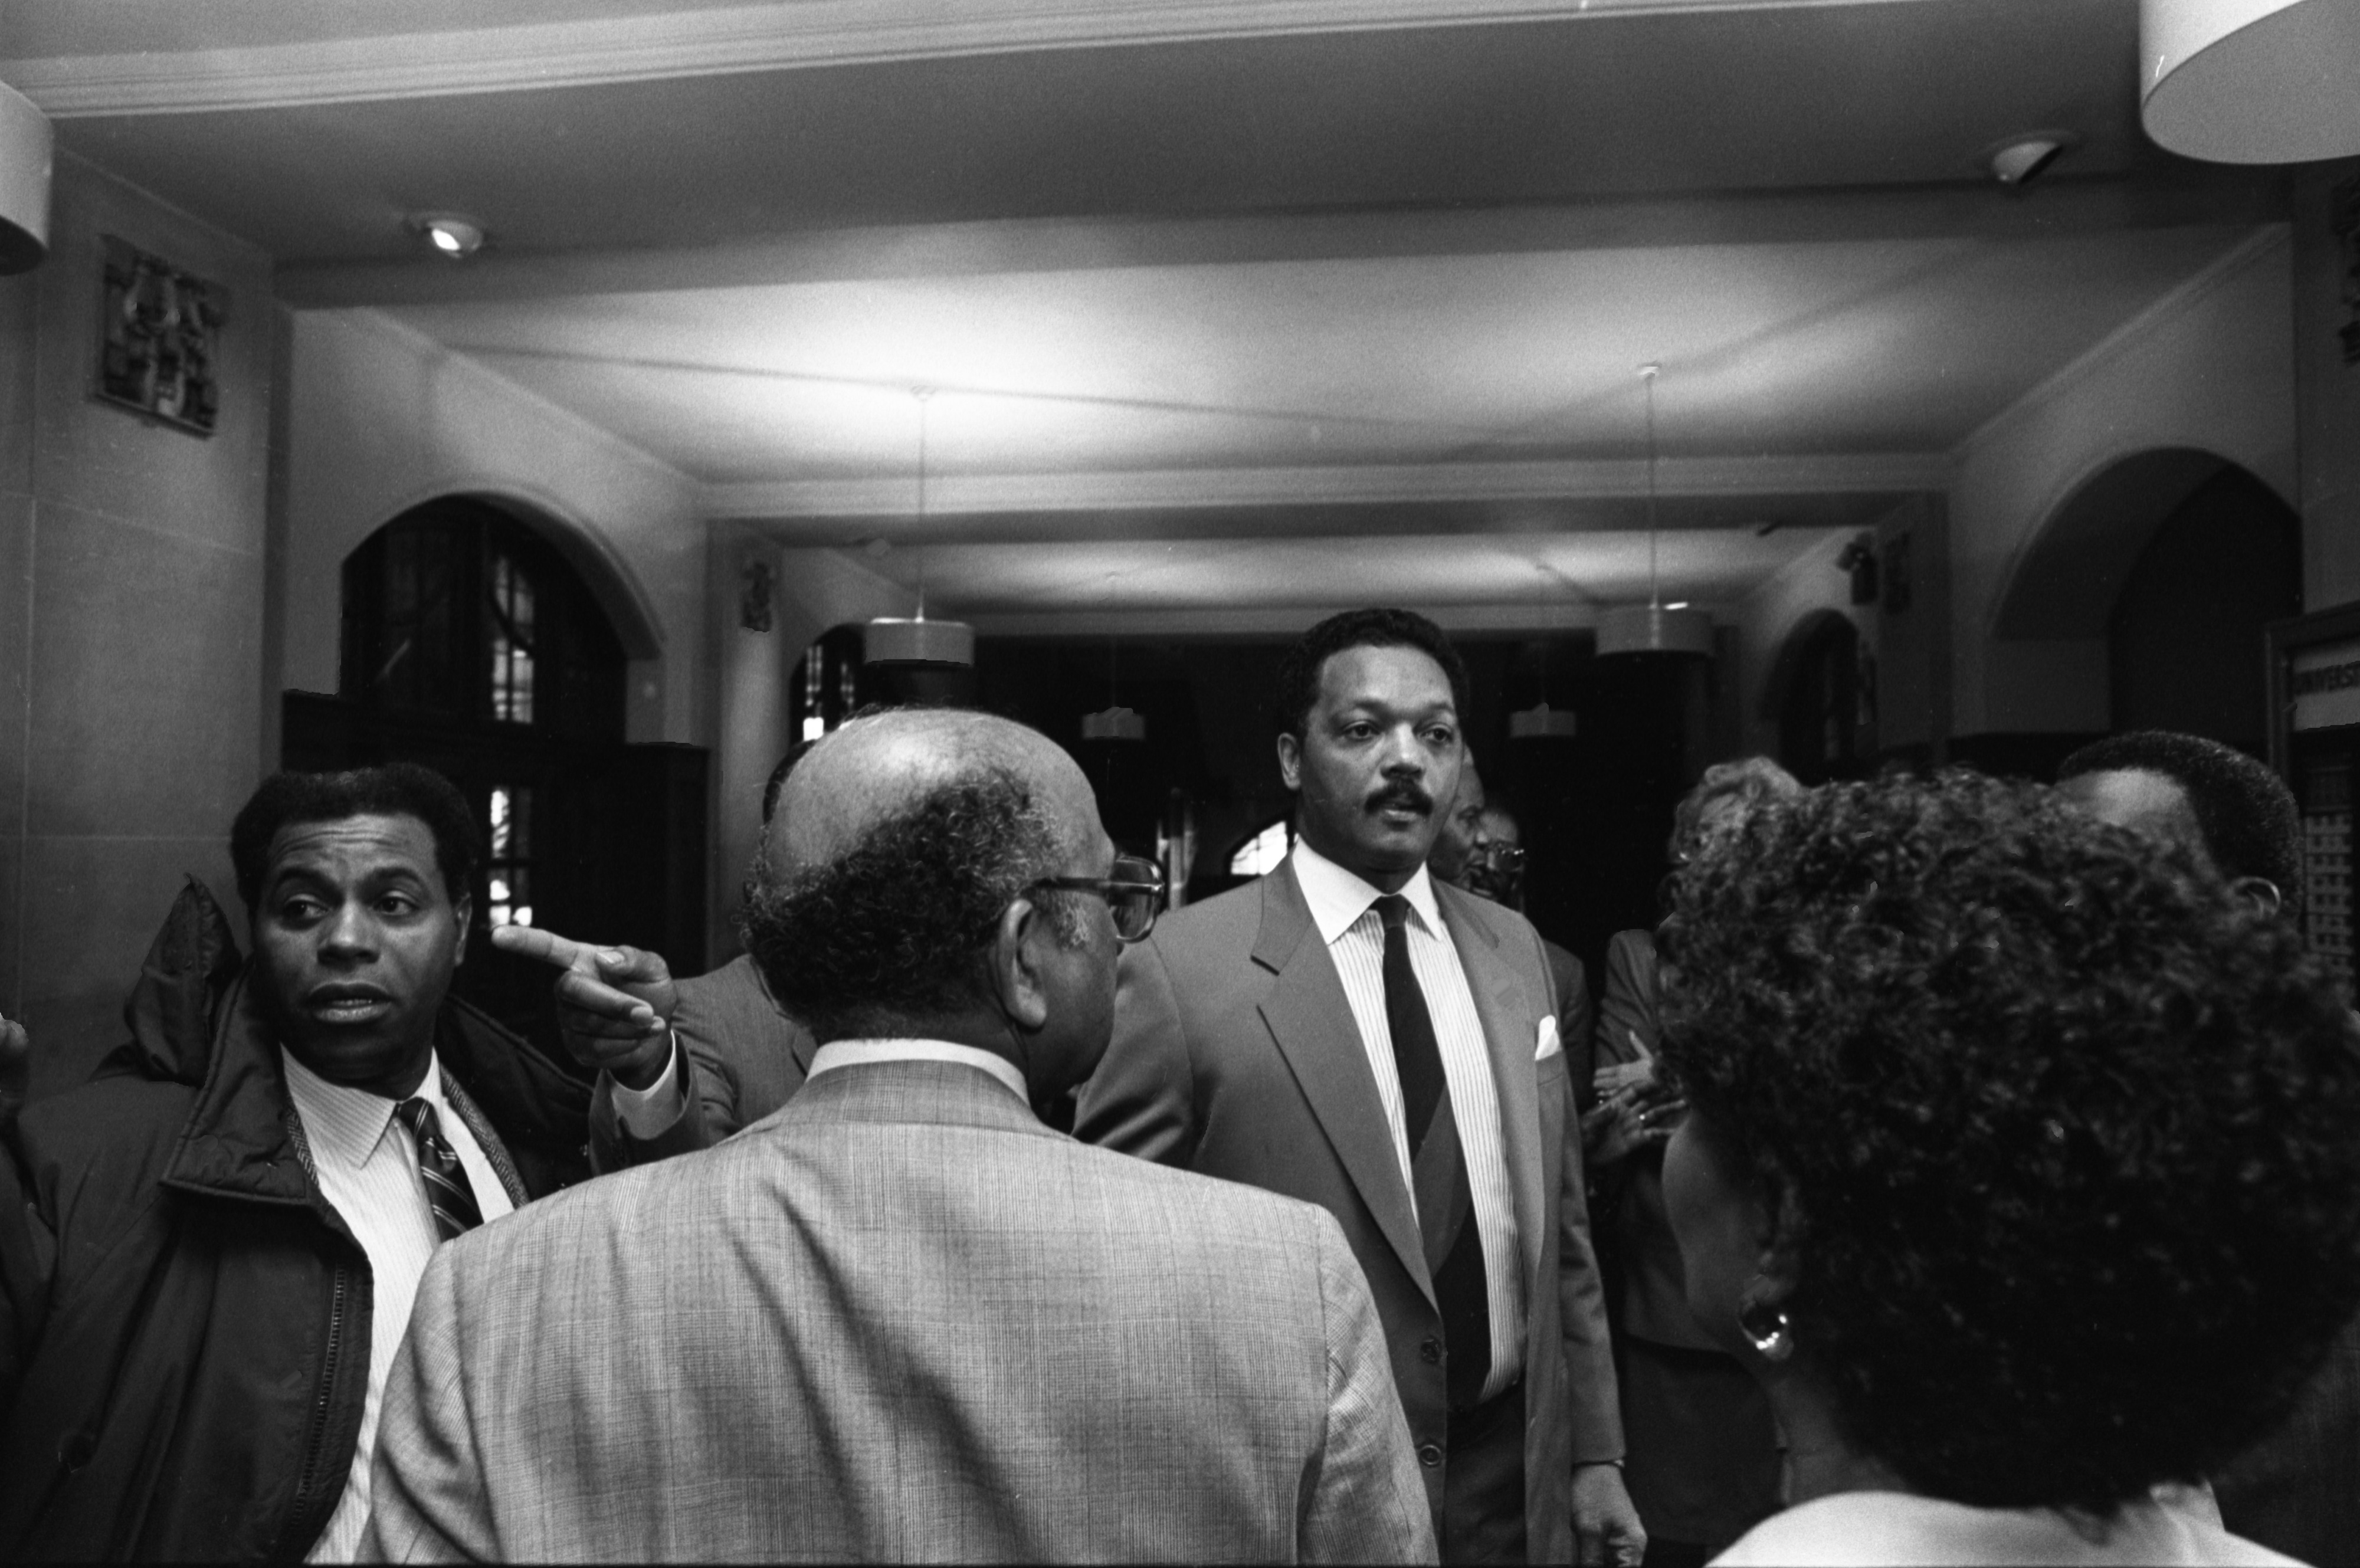 Rev. Jesse Jackson In Ann Arbor For Meeting With Black Action Movement Members, March 23, 1987 image